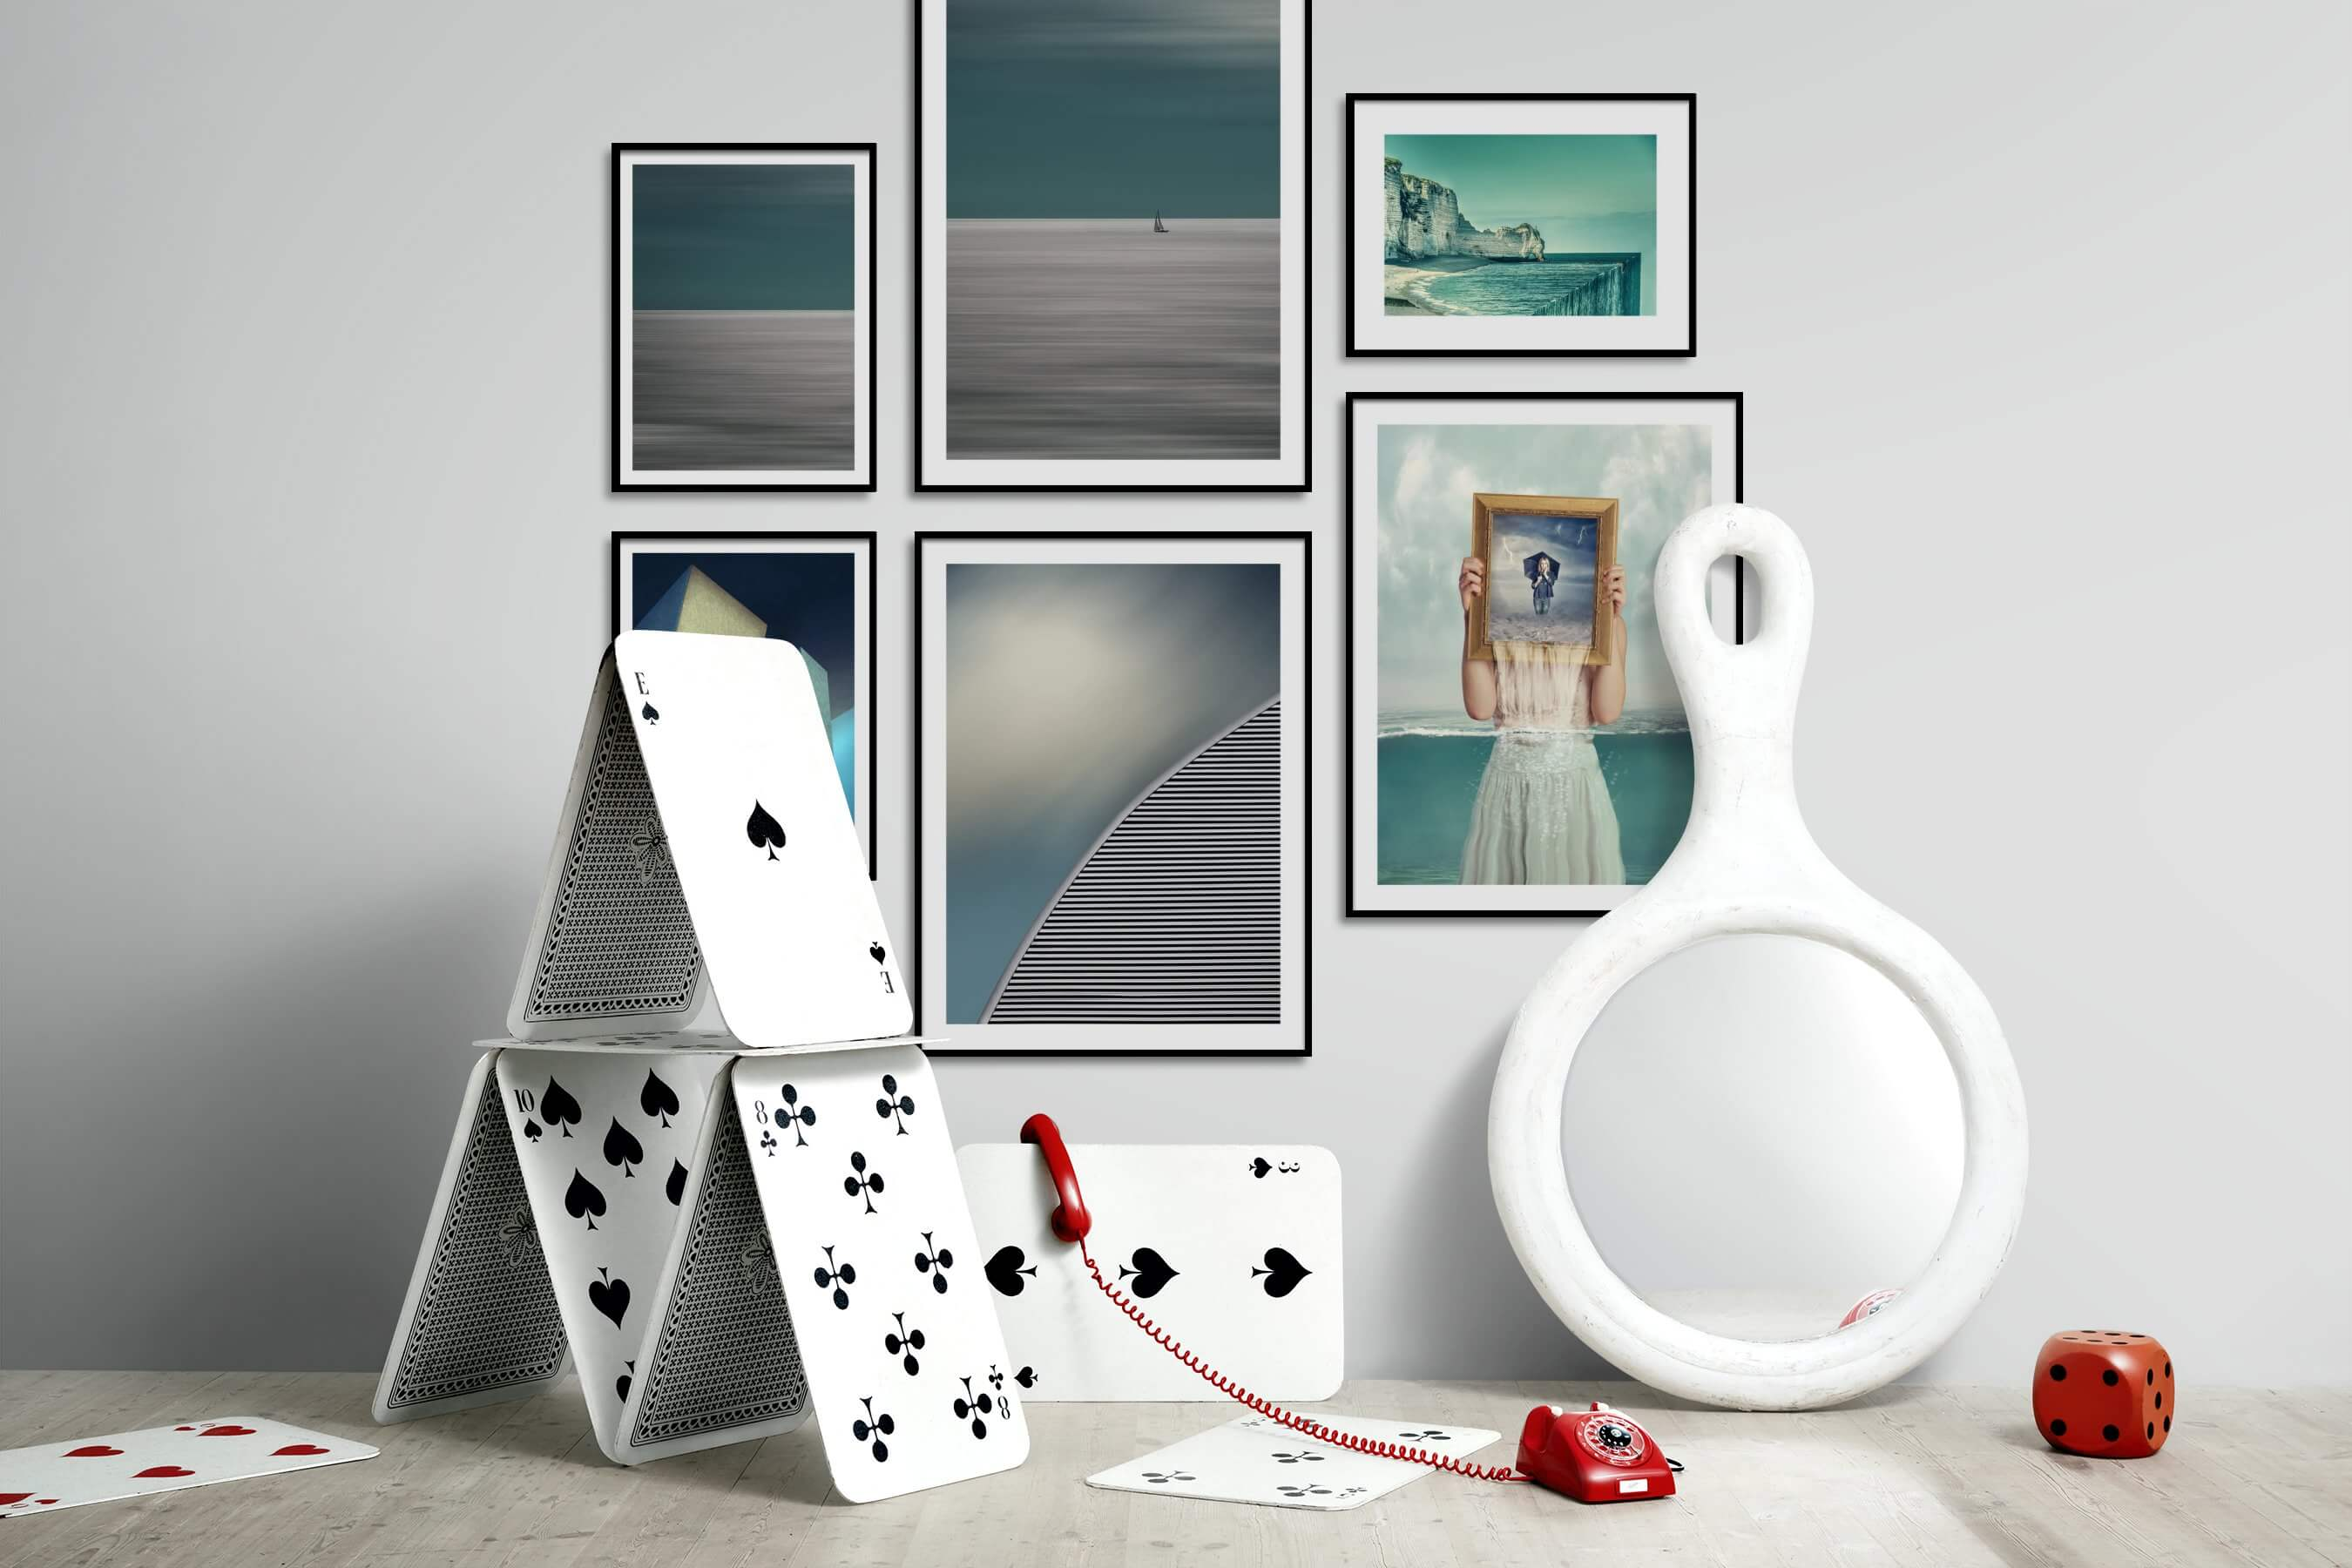 Gallery wall idea with six framed pictures arranged on a wall depicting For the Minimalist, Beach & Water, and Artsy